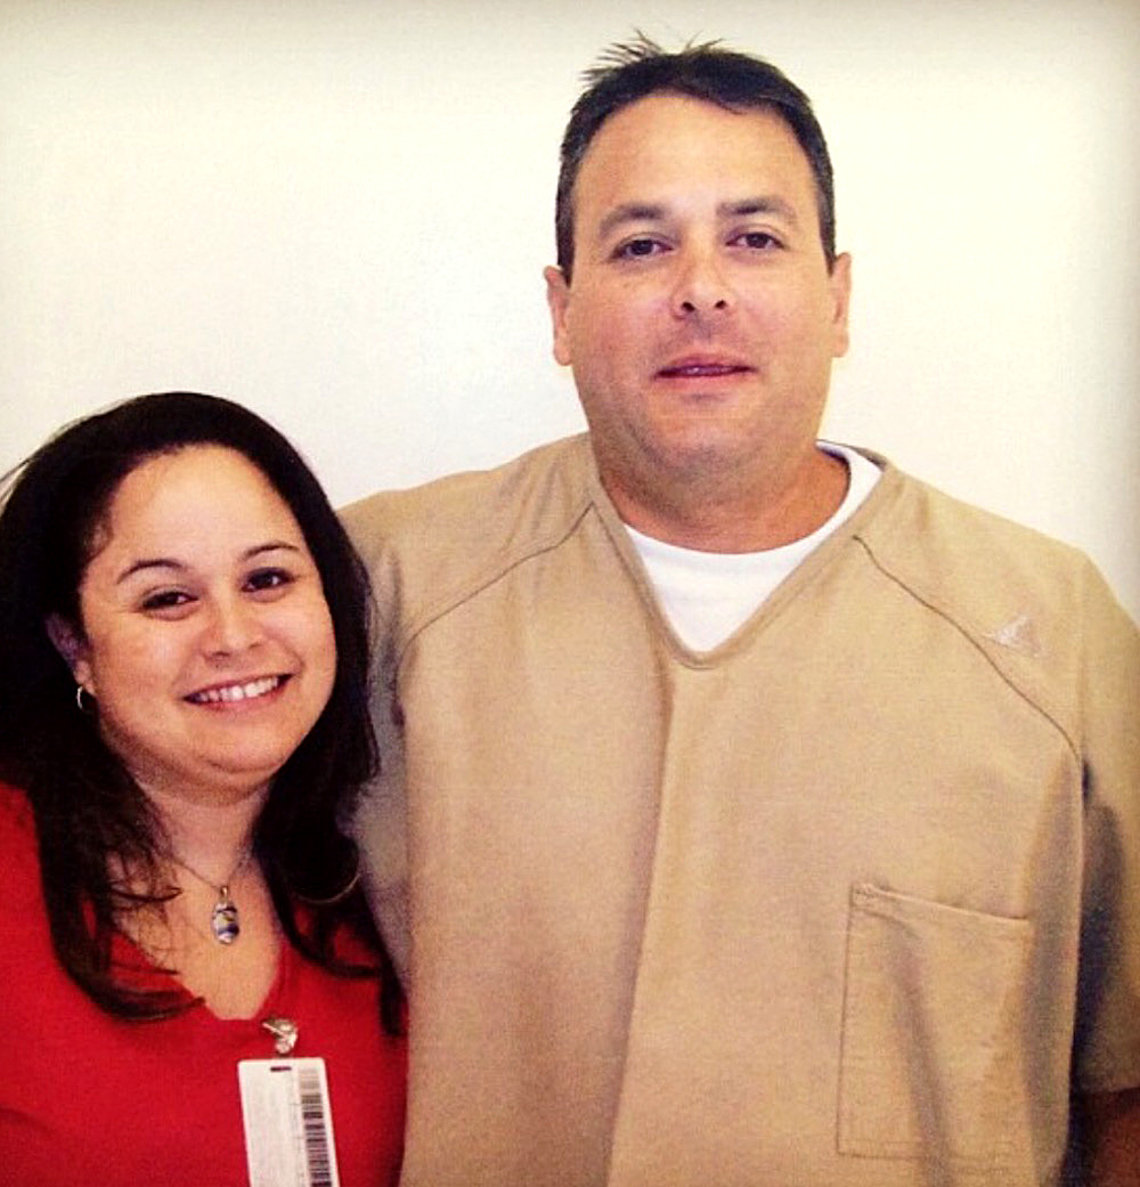 Kealiiokalani Meheula with his sister, Kainani, in October 2015. This was Kealiiokalani's first visit with his father and grandmother since he was sent to the mainland in 2006. He has been held at Saguaro Correctional Center since 2007.